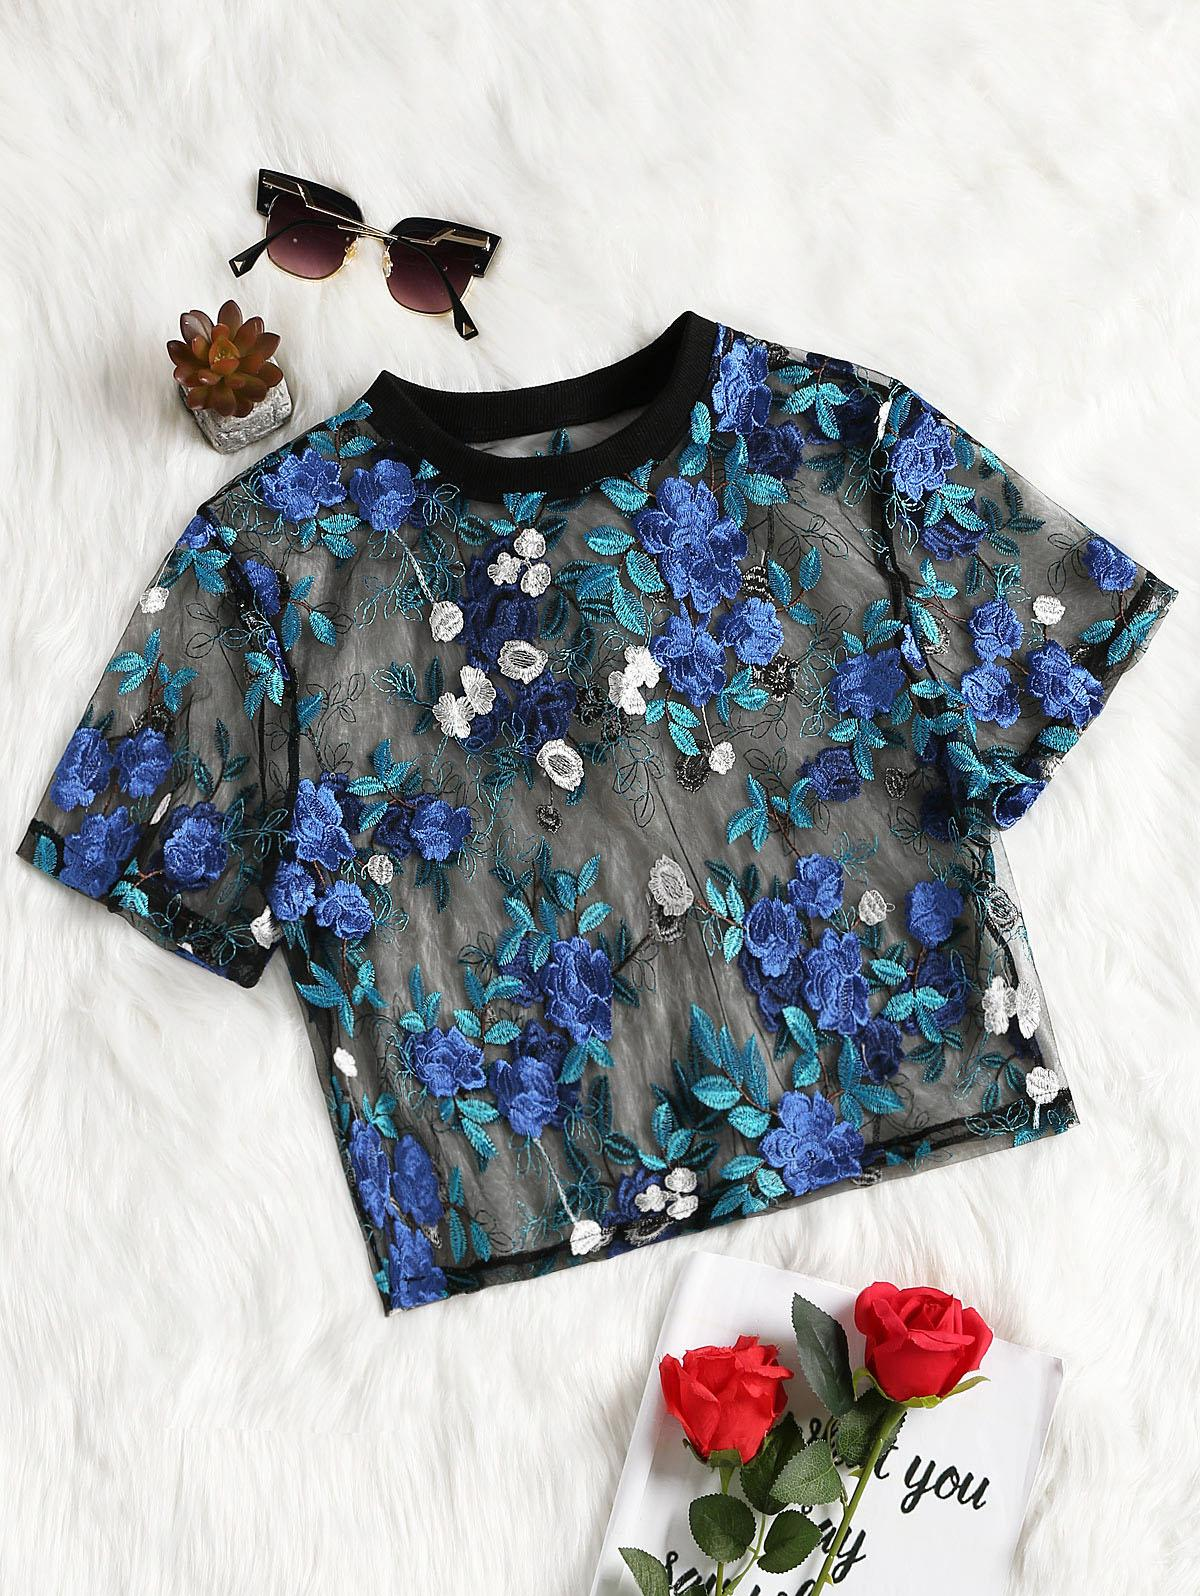 276e0b75cf204 2019 ZAFUL Embroidery Women Tops Sexy Floral Embroidered Mesh Top Short  Sleeve Crop Blouses Casual O Neck See Through Mesh Blouse Top From Hiem